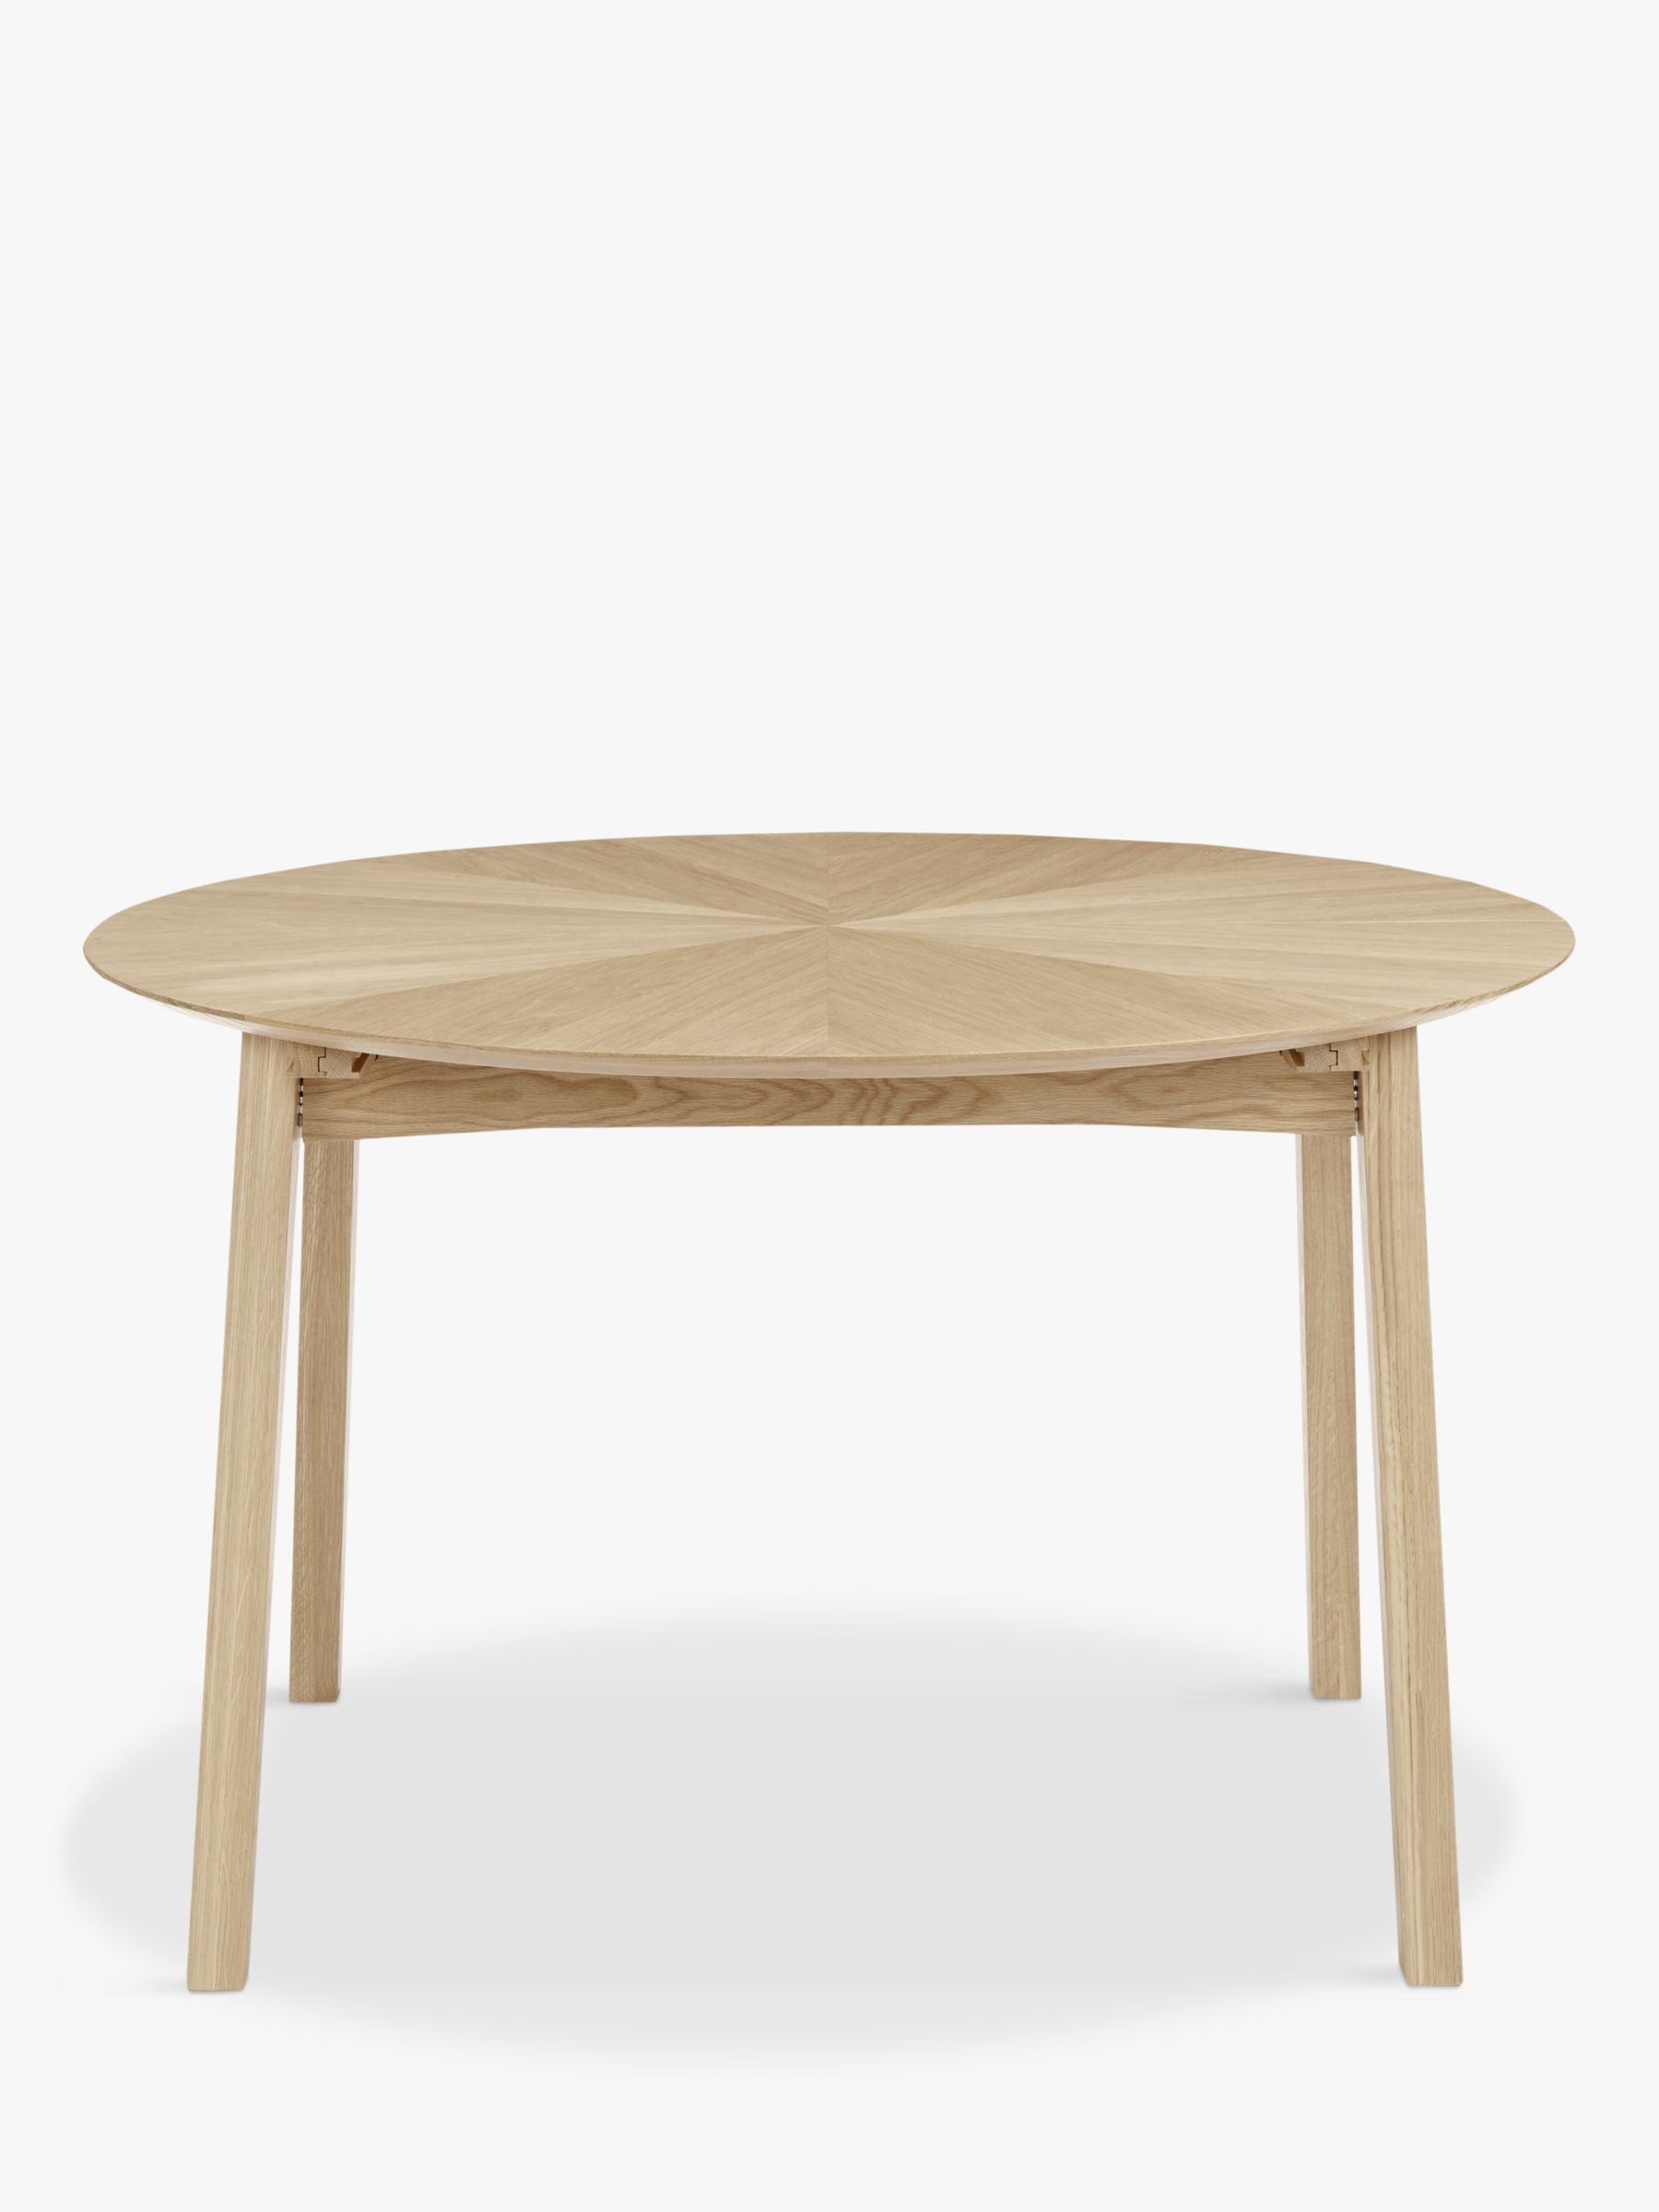 john lewis duhrer 4 6 seater extending round dining table